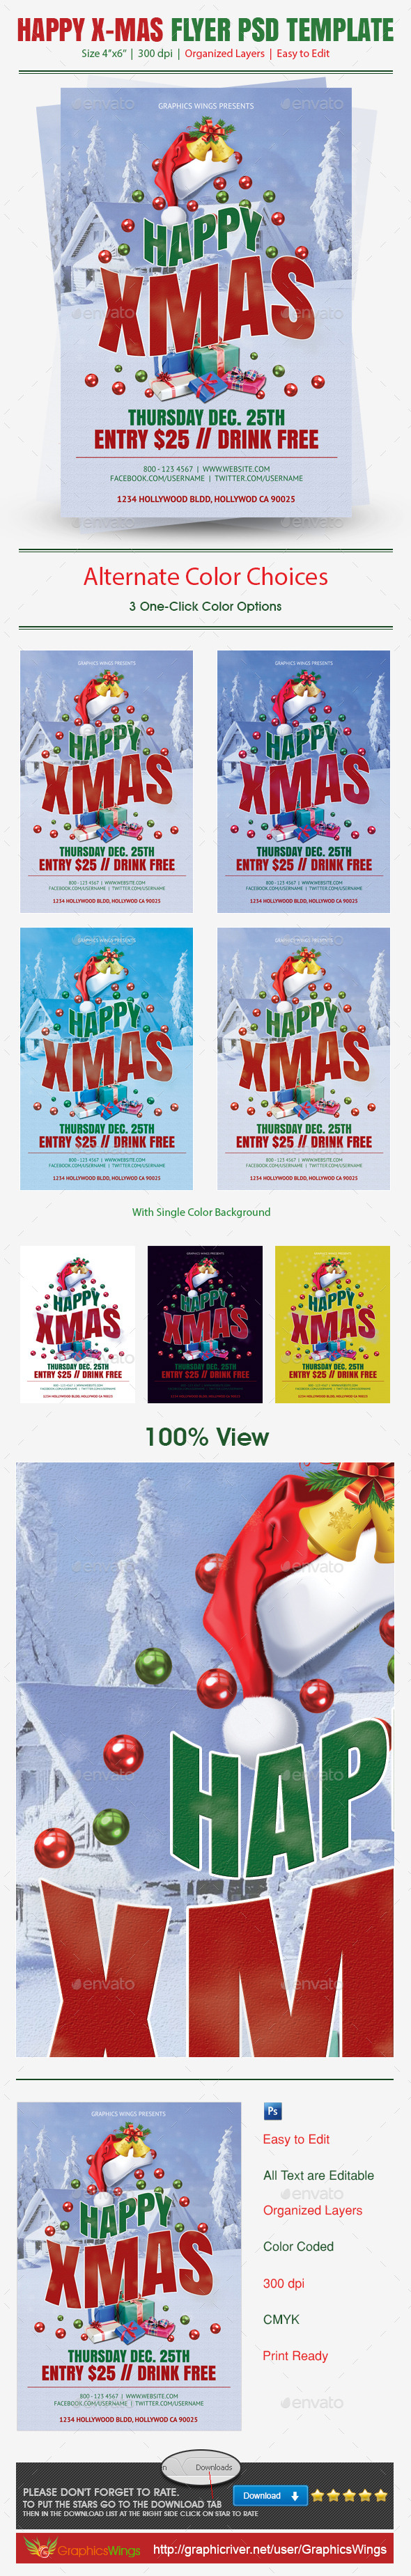 GraphicRiver Happy Xmas Flyer PSD Template 9470077